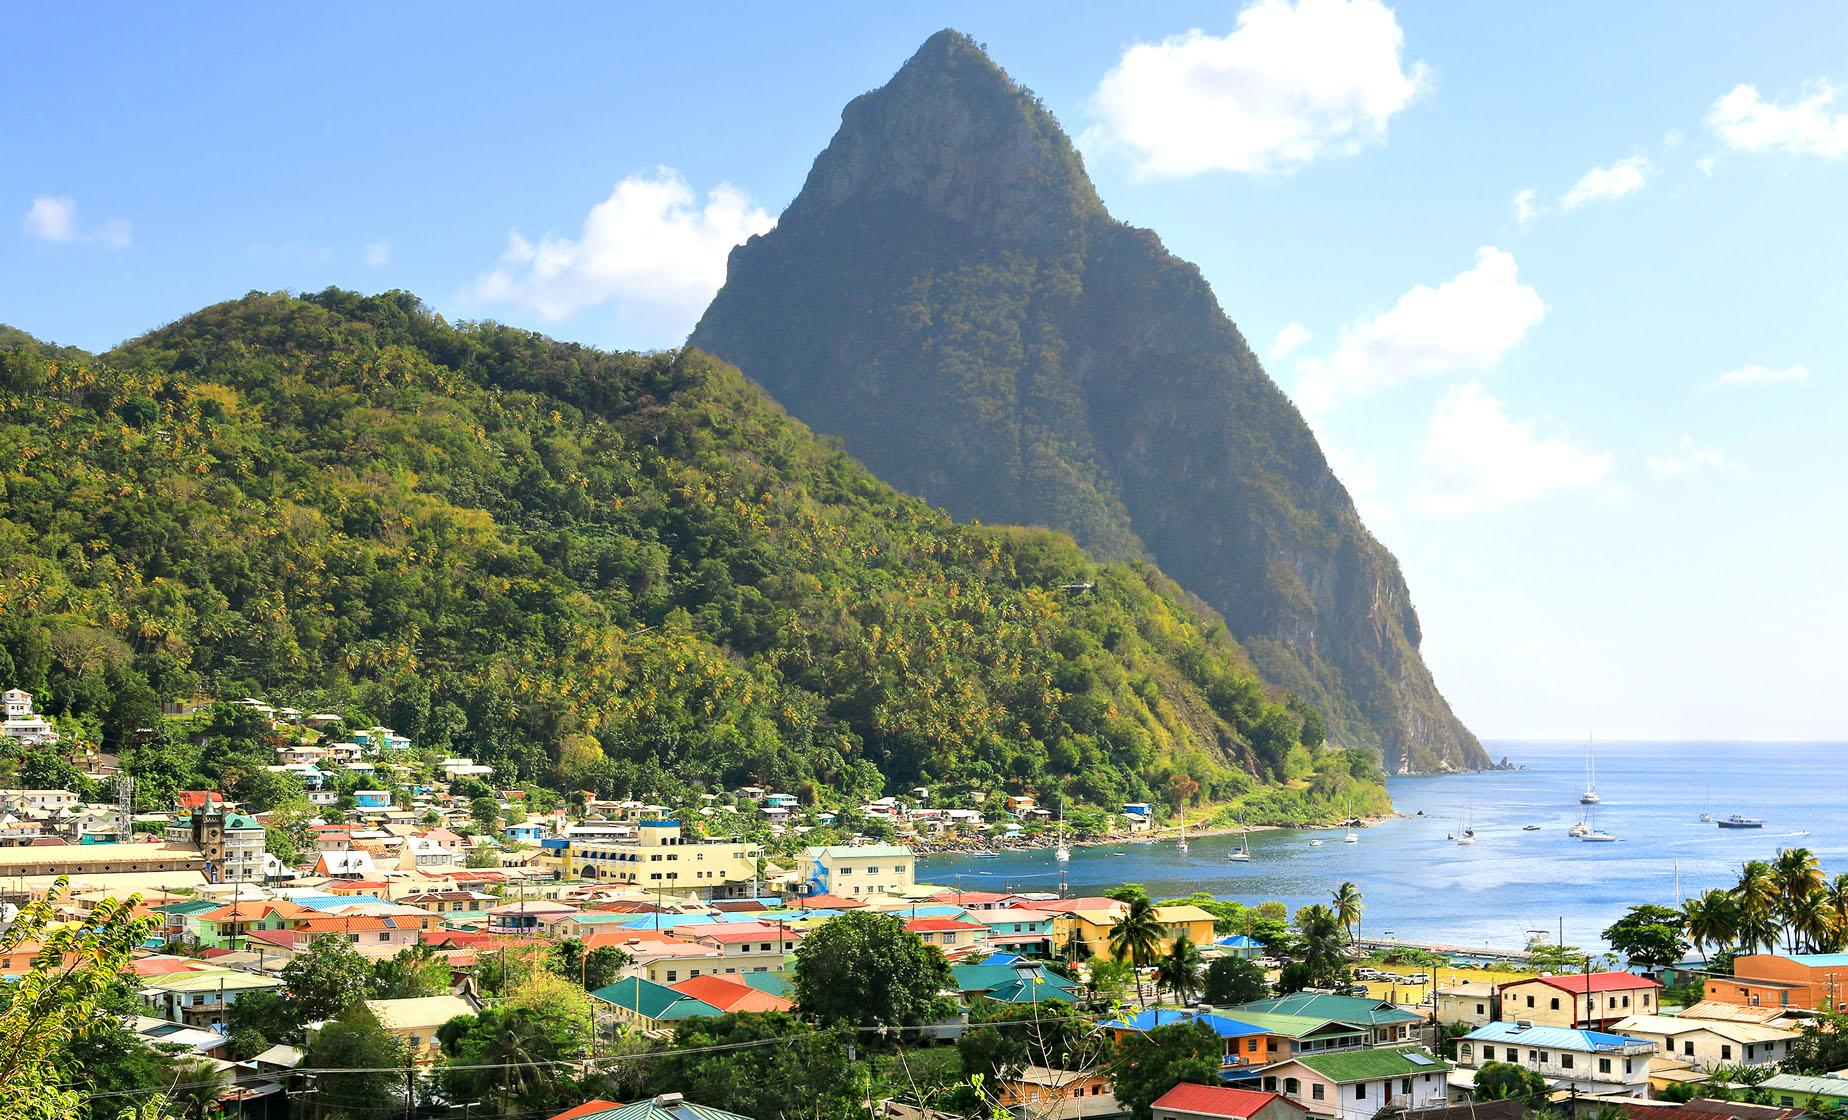 St. Lucia Drive-in Volcano & Waterfalls Soufriere Excursion